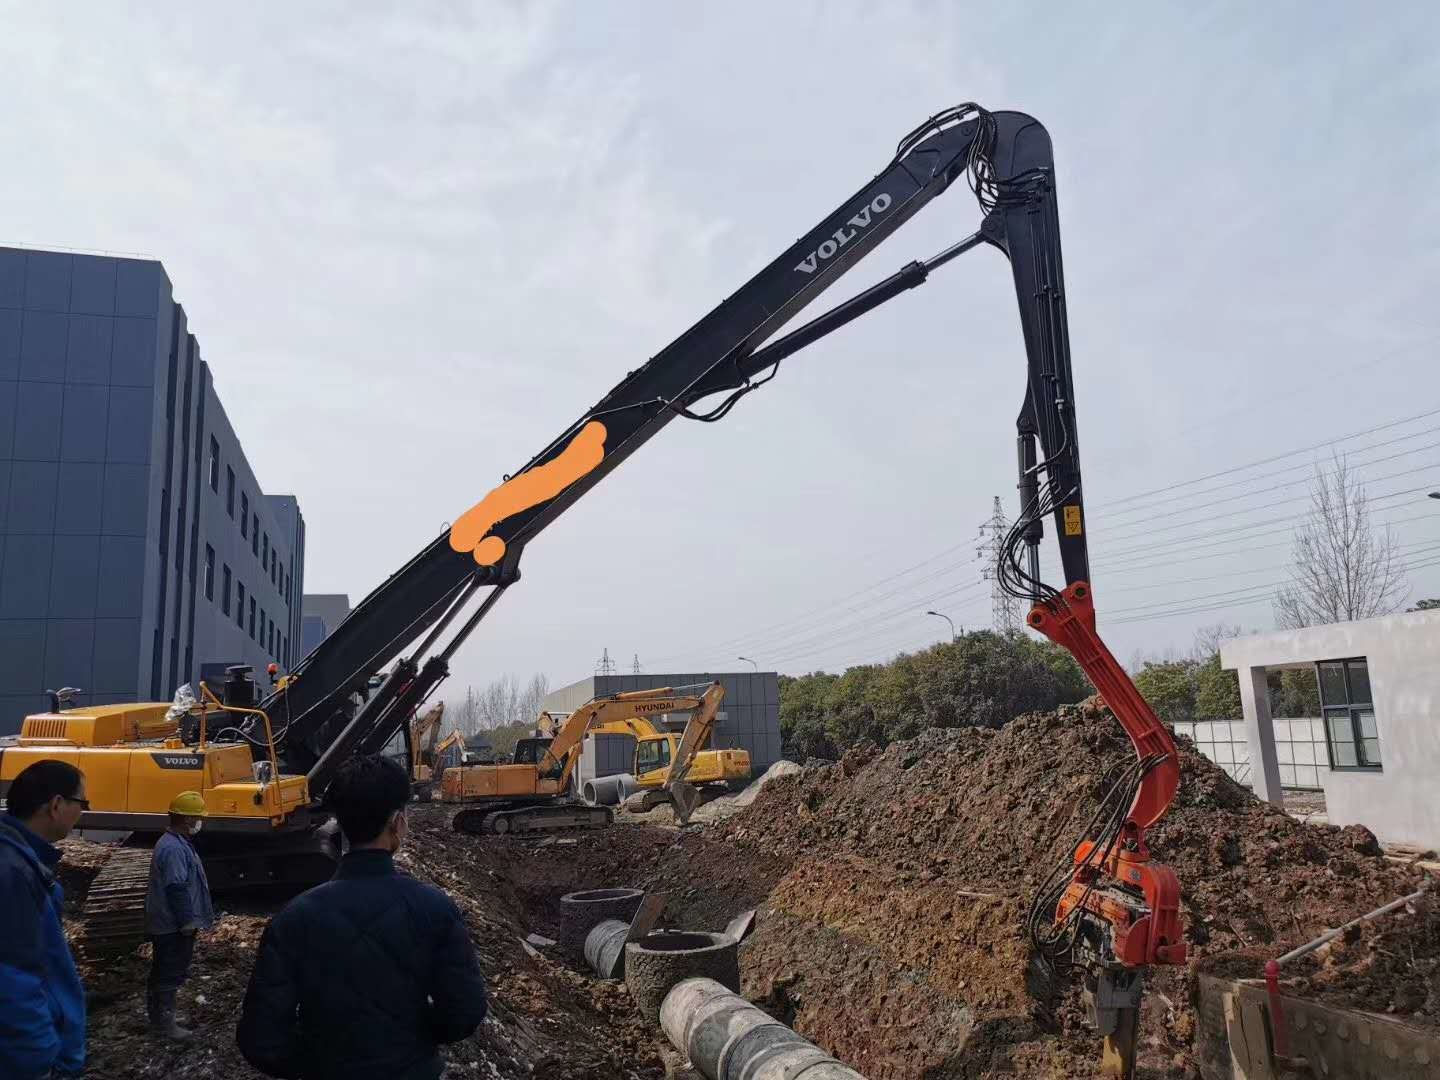 Excavator Volvo 480  Vibro Pile Hammer With Long Boom For9-18 Meter Steel Sheet Pile and Pile Casing